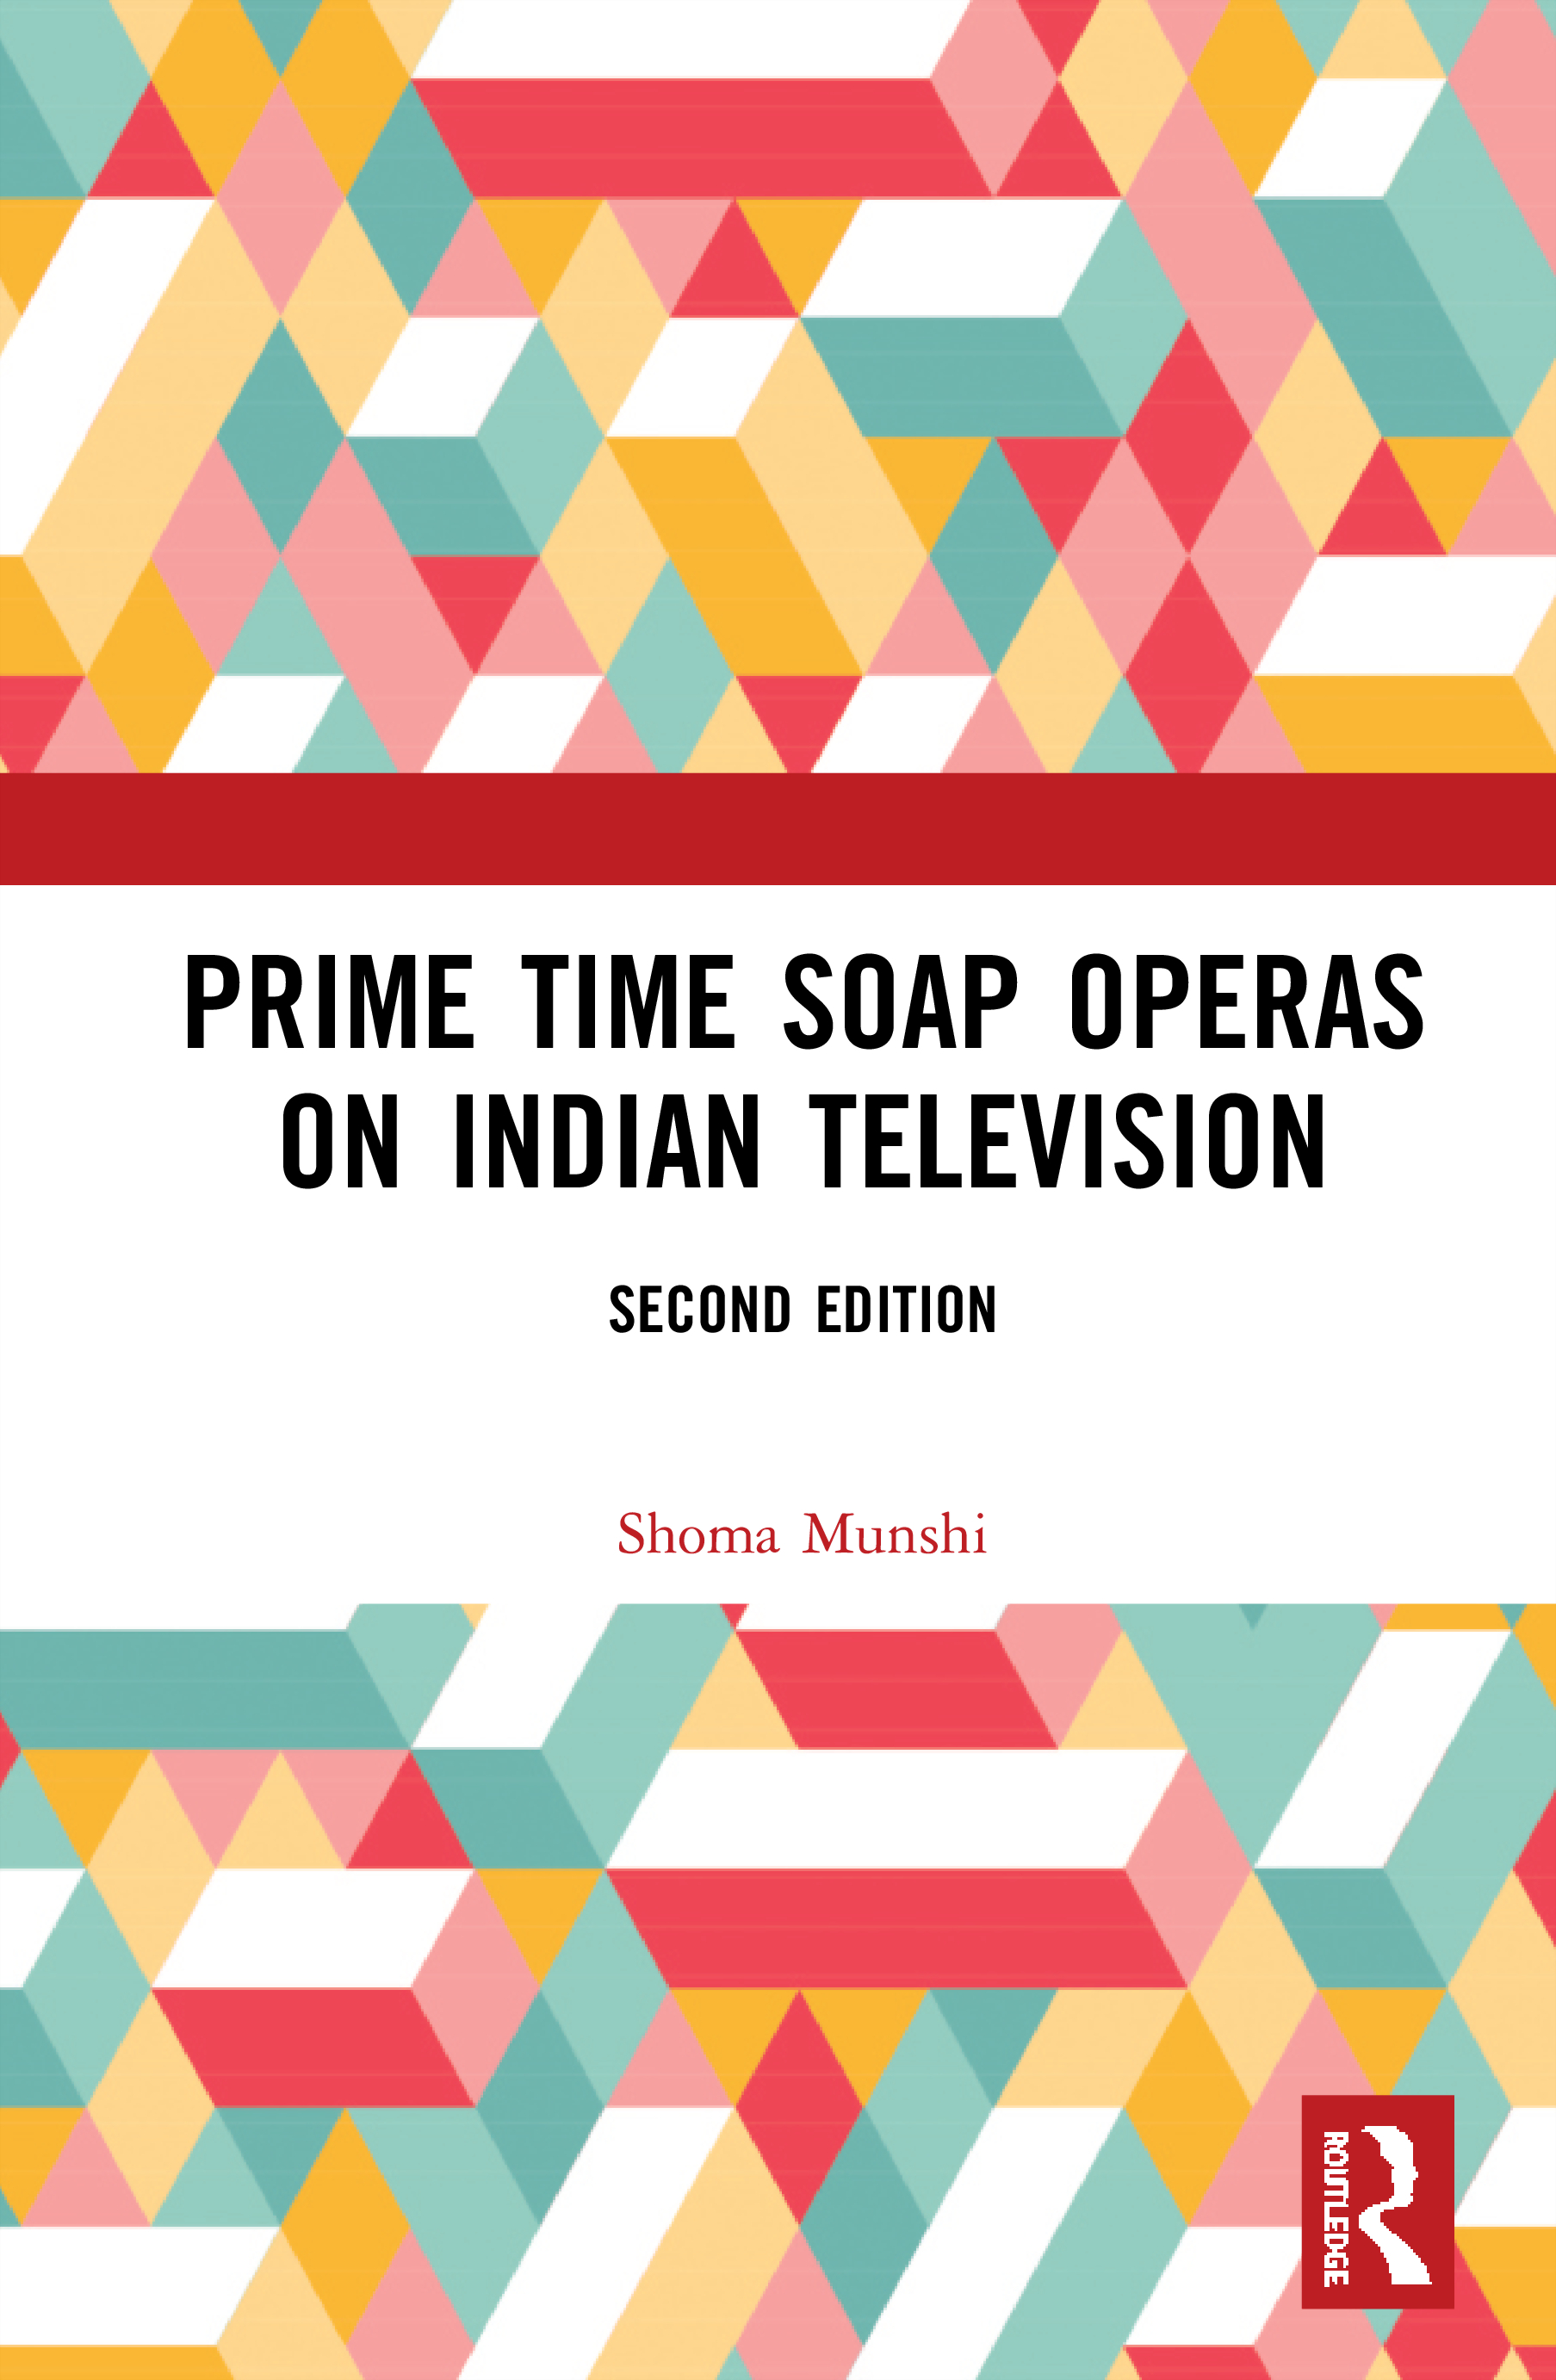 Prime Time Soap Operas on Indian Television book cover